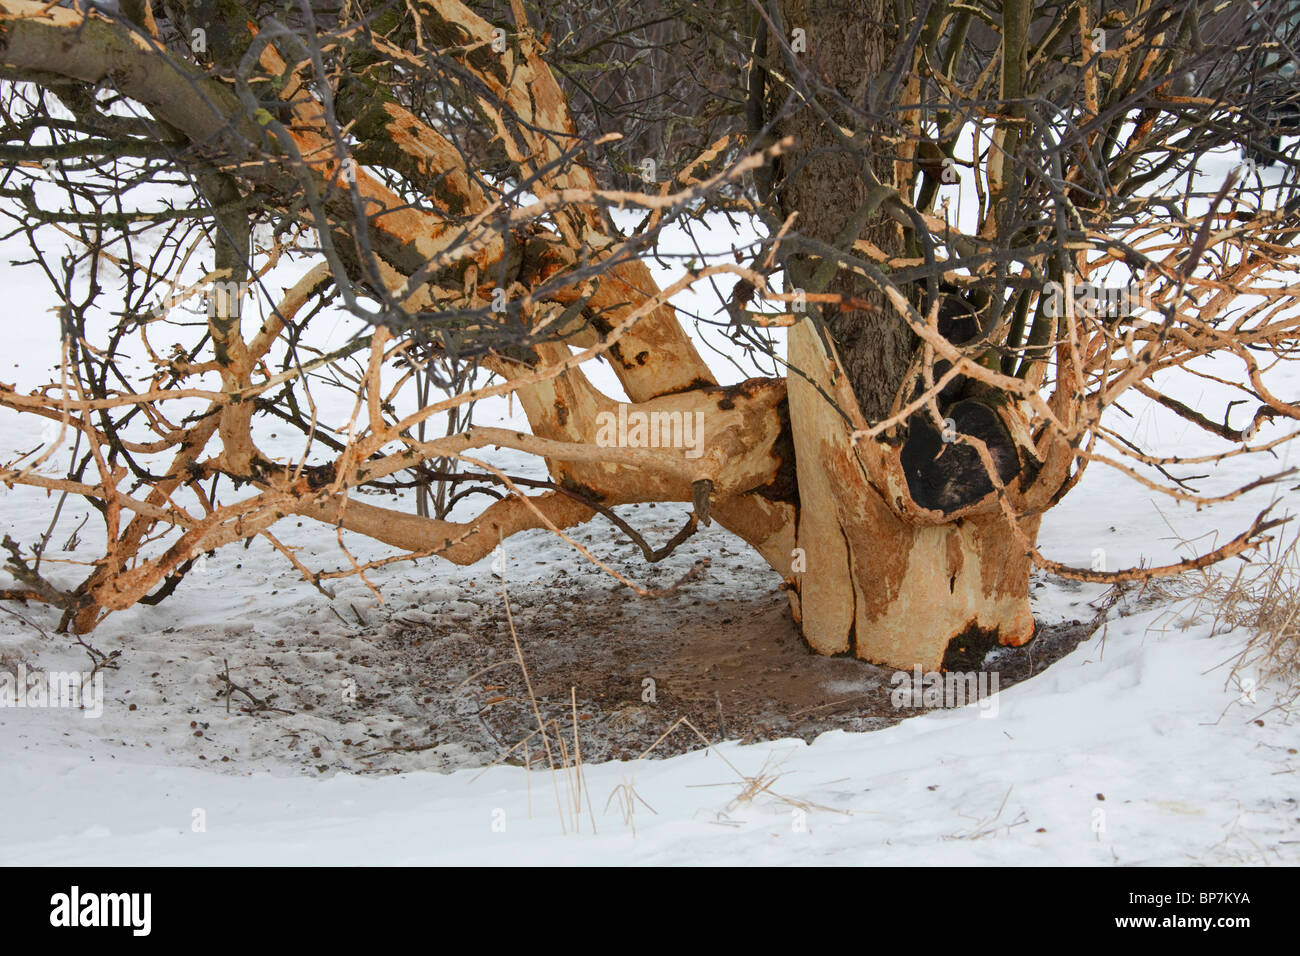 Fruit tree damaged by rabbits (Oryctolagus cuniculus) and other rodents by eating the bark in winter - Stock Image